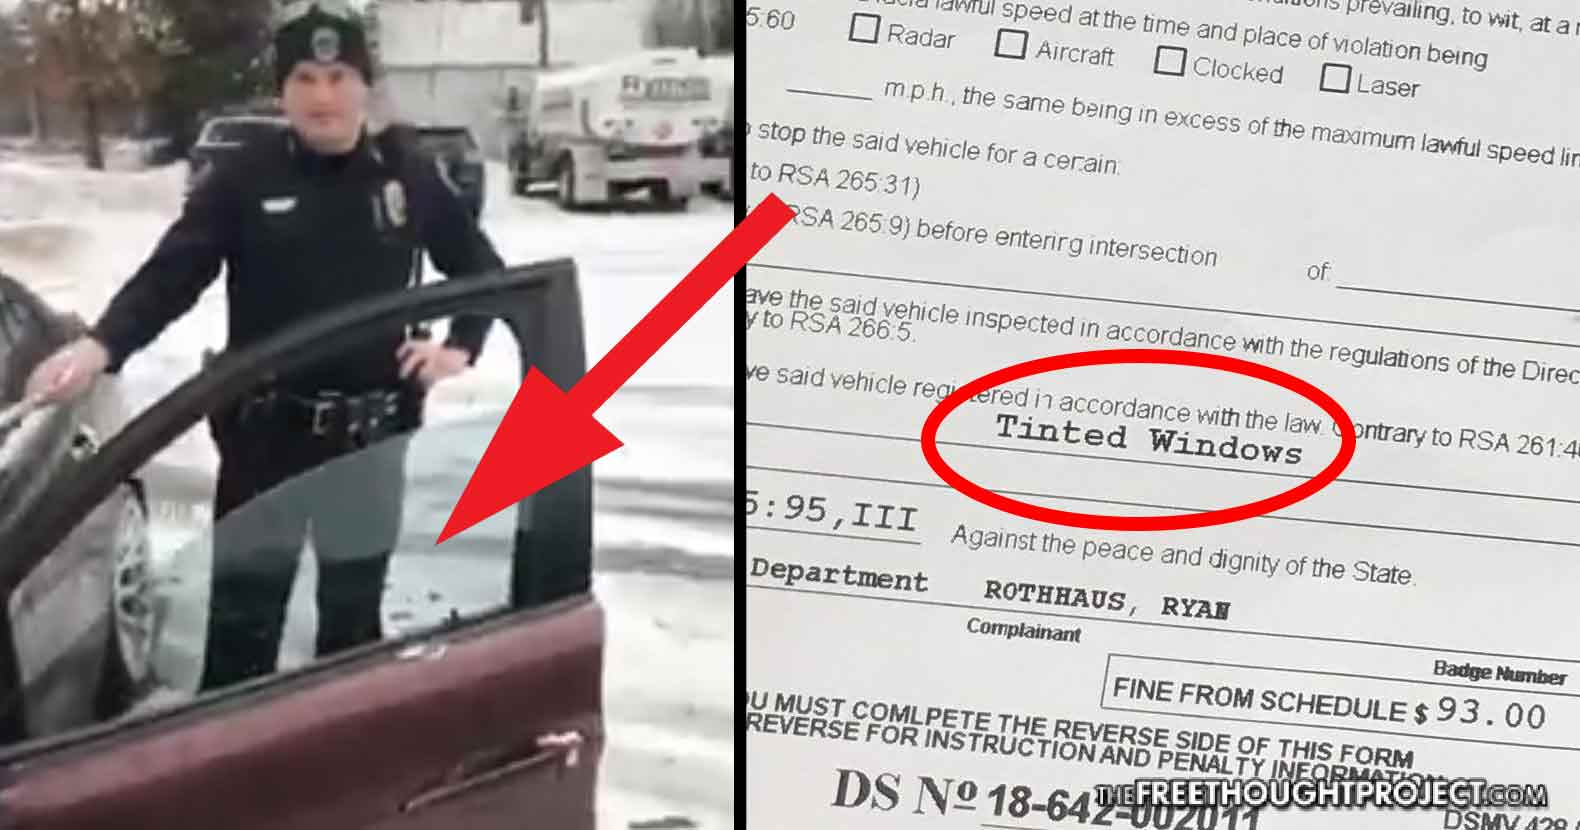 Exclusive Cop Pulls Man Over Tickets Him For Illegal Tint But His Windows Have No Tint